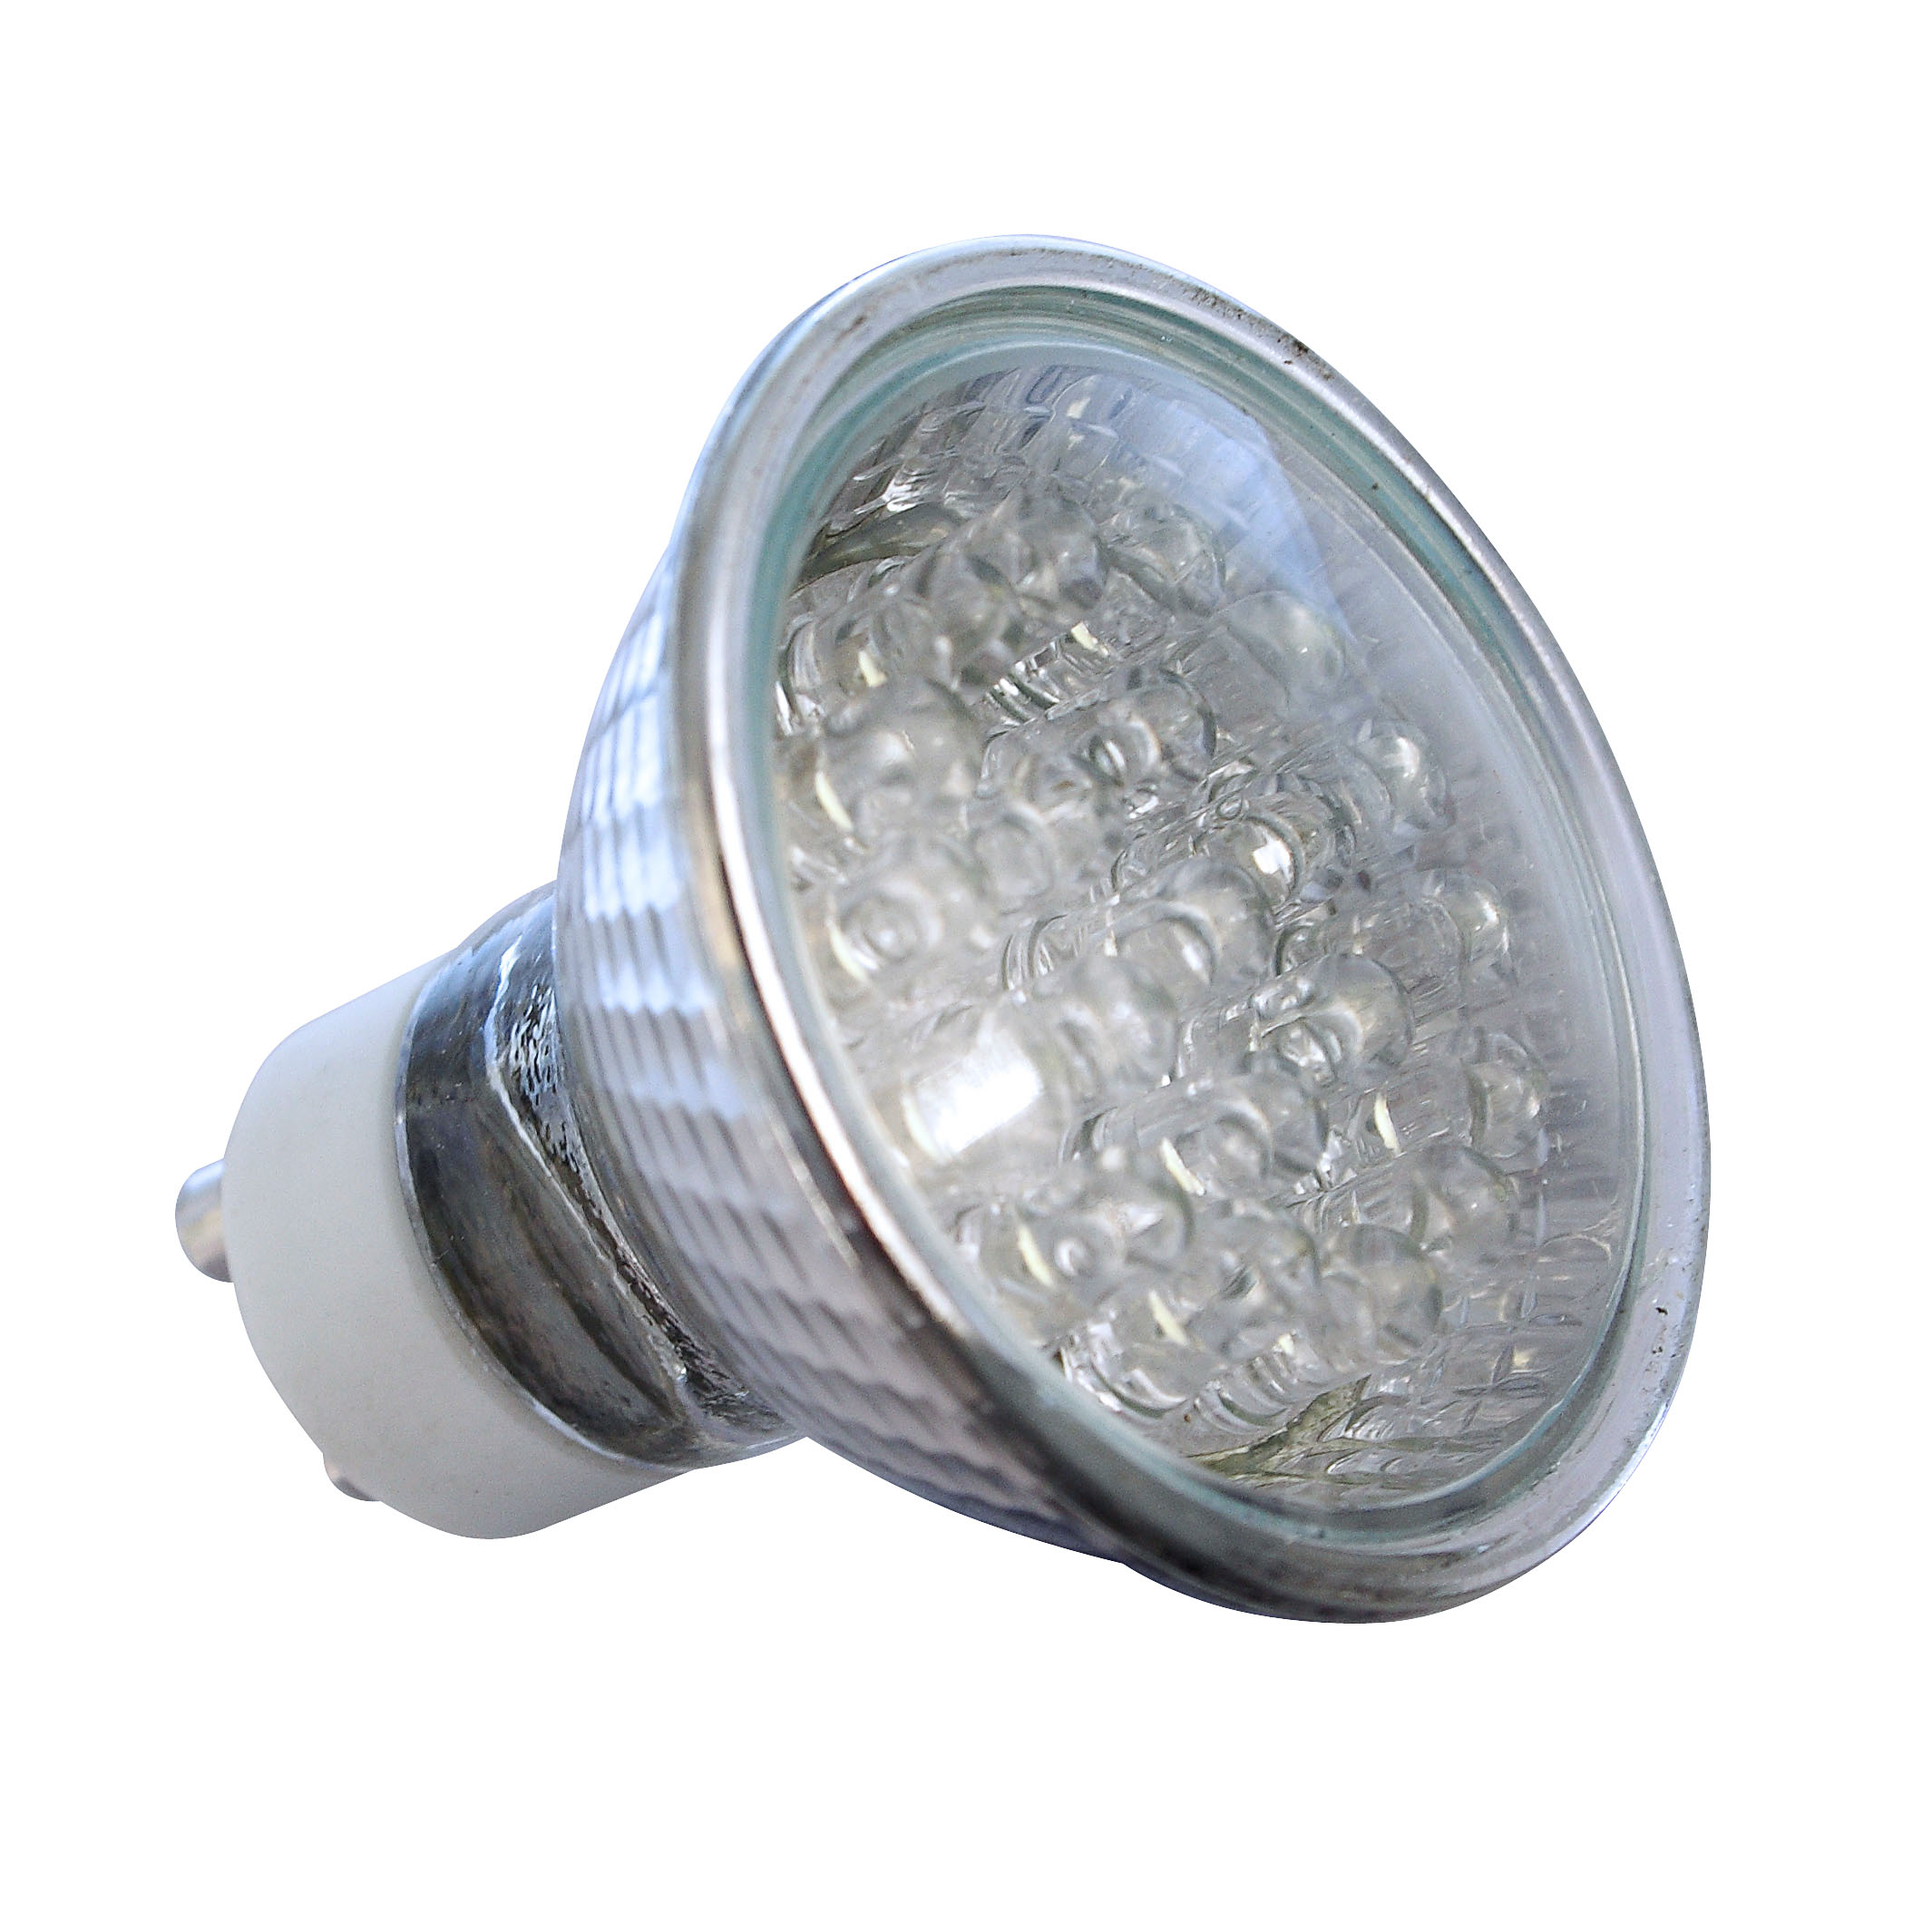 10 Differnet Types Of Popular Led Lamps Warisan Lighting